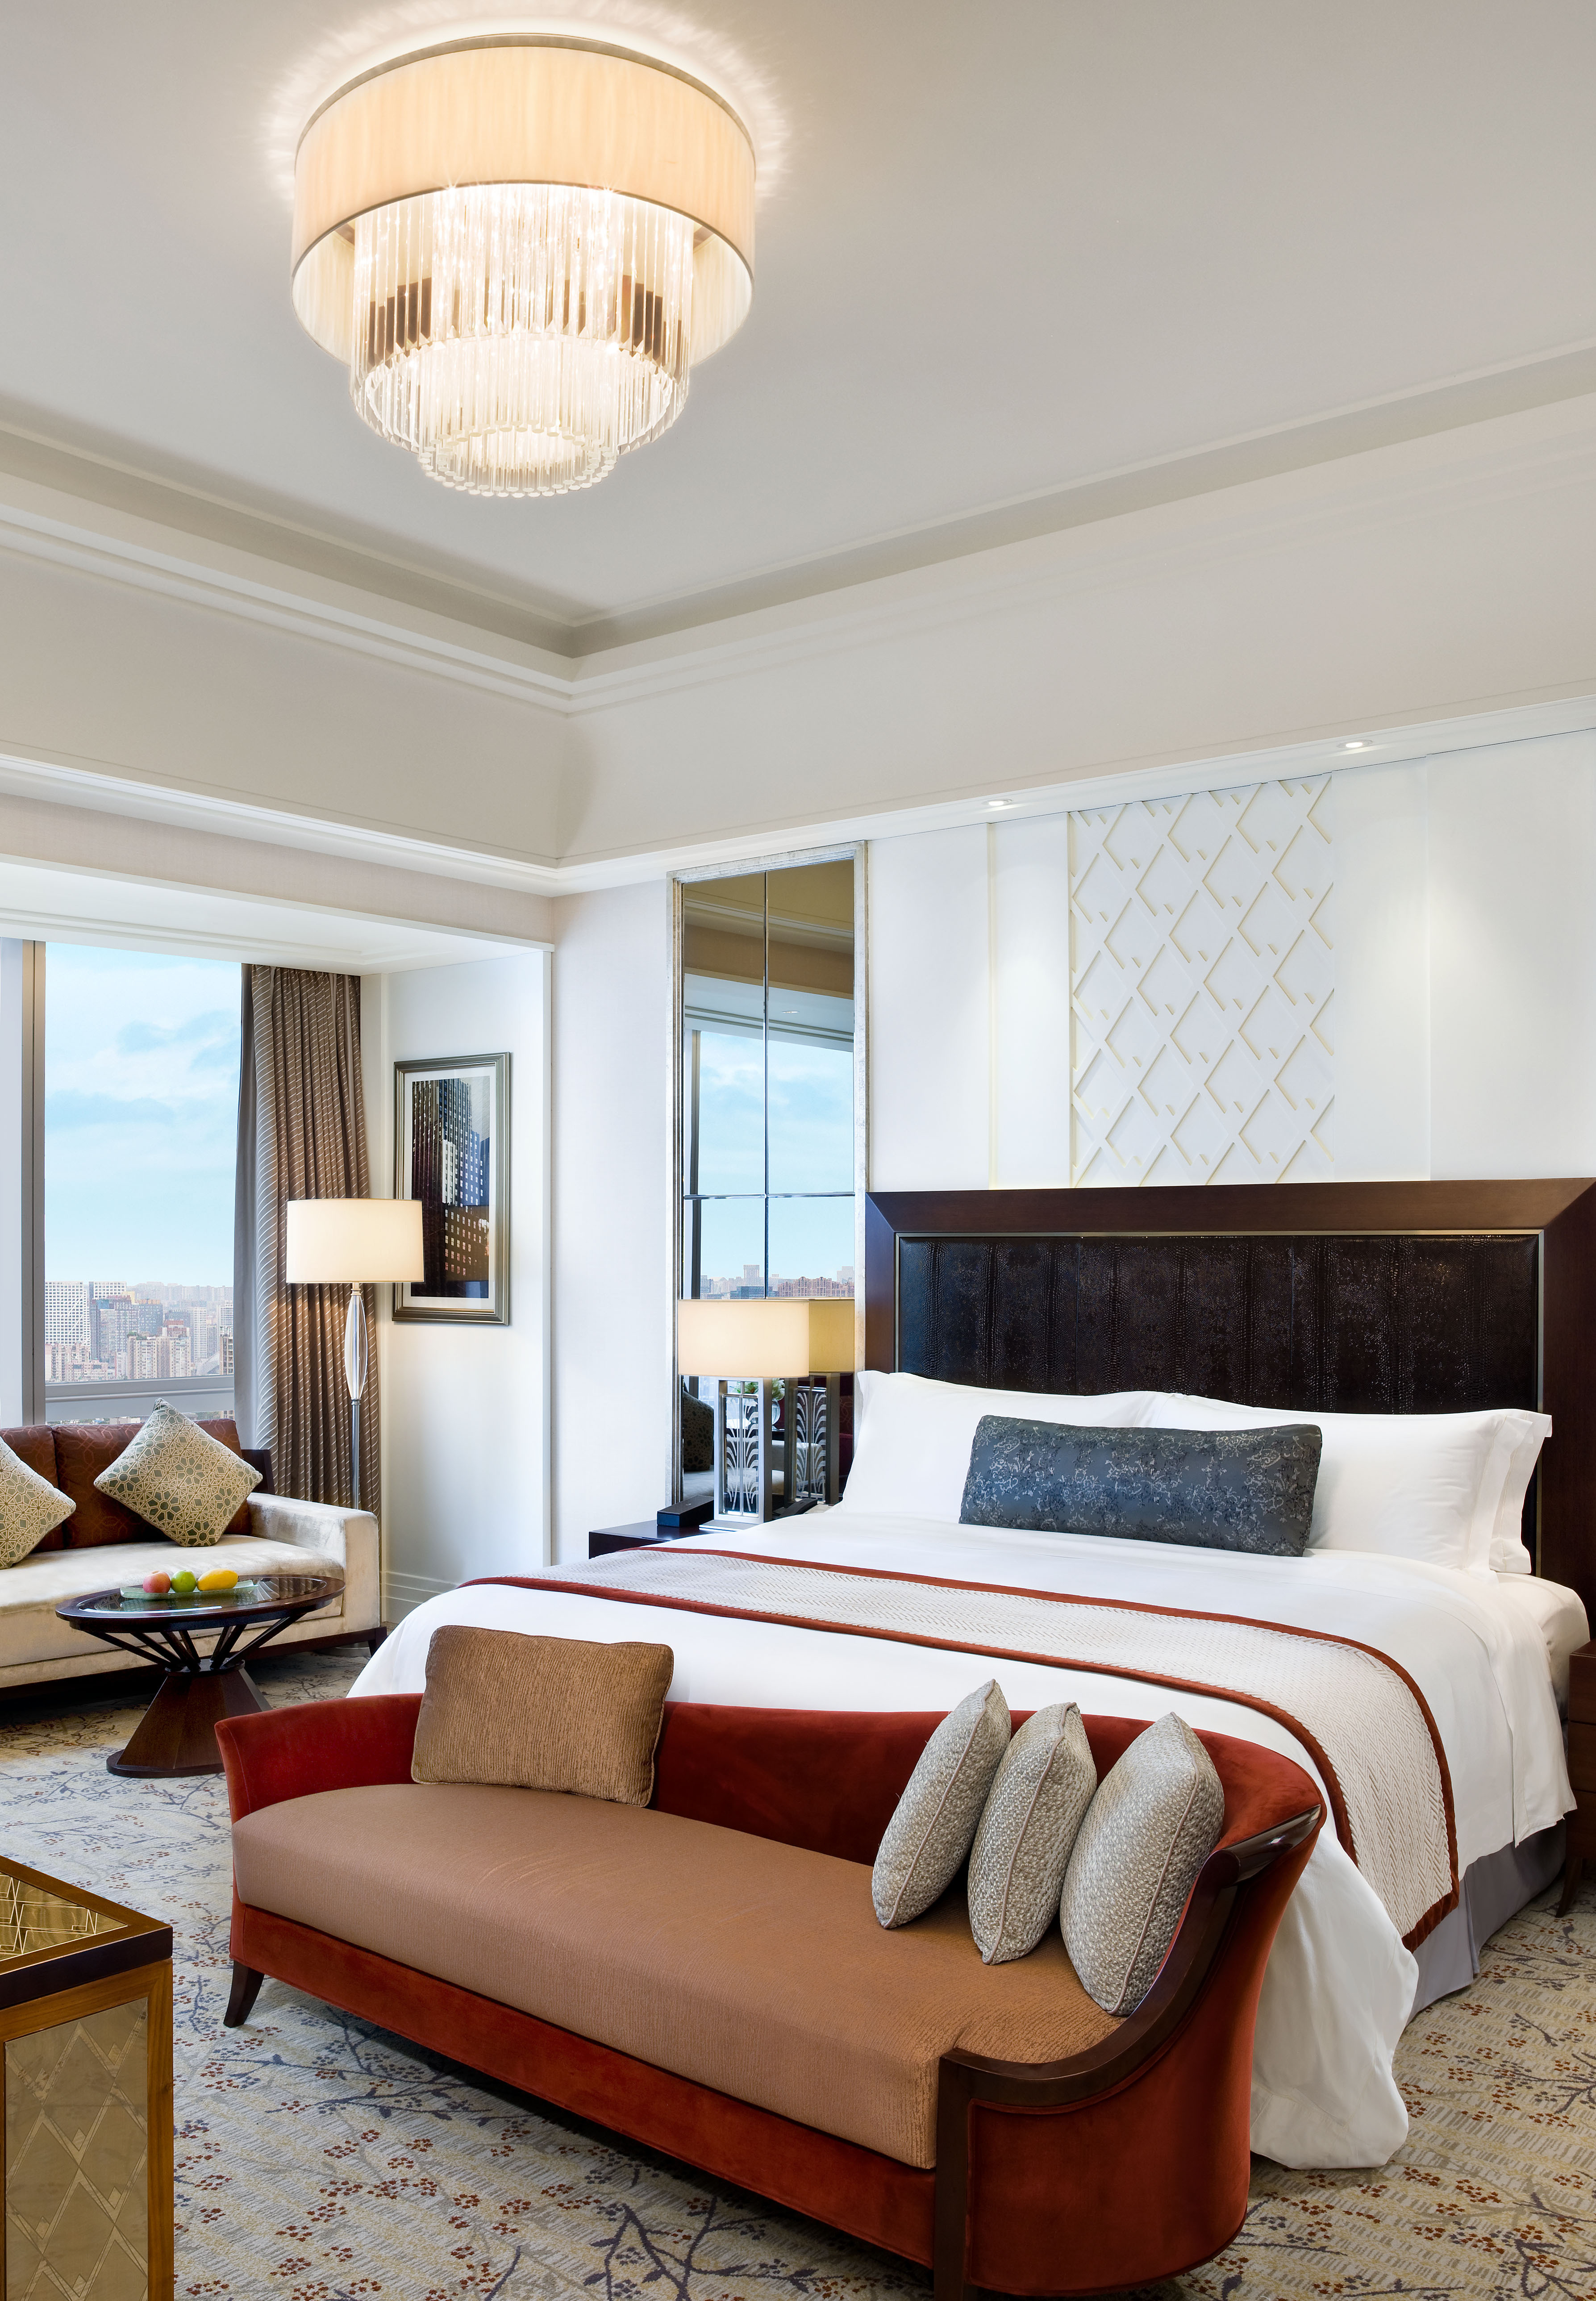 Fancy Hotel Room: Starwood Hotels & Resorts Set To Double Its Luxury